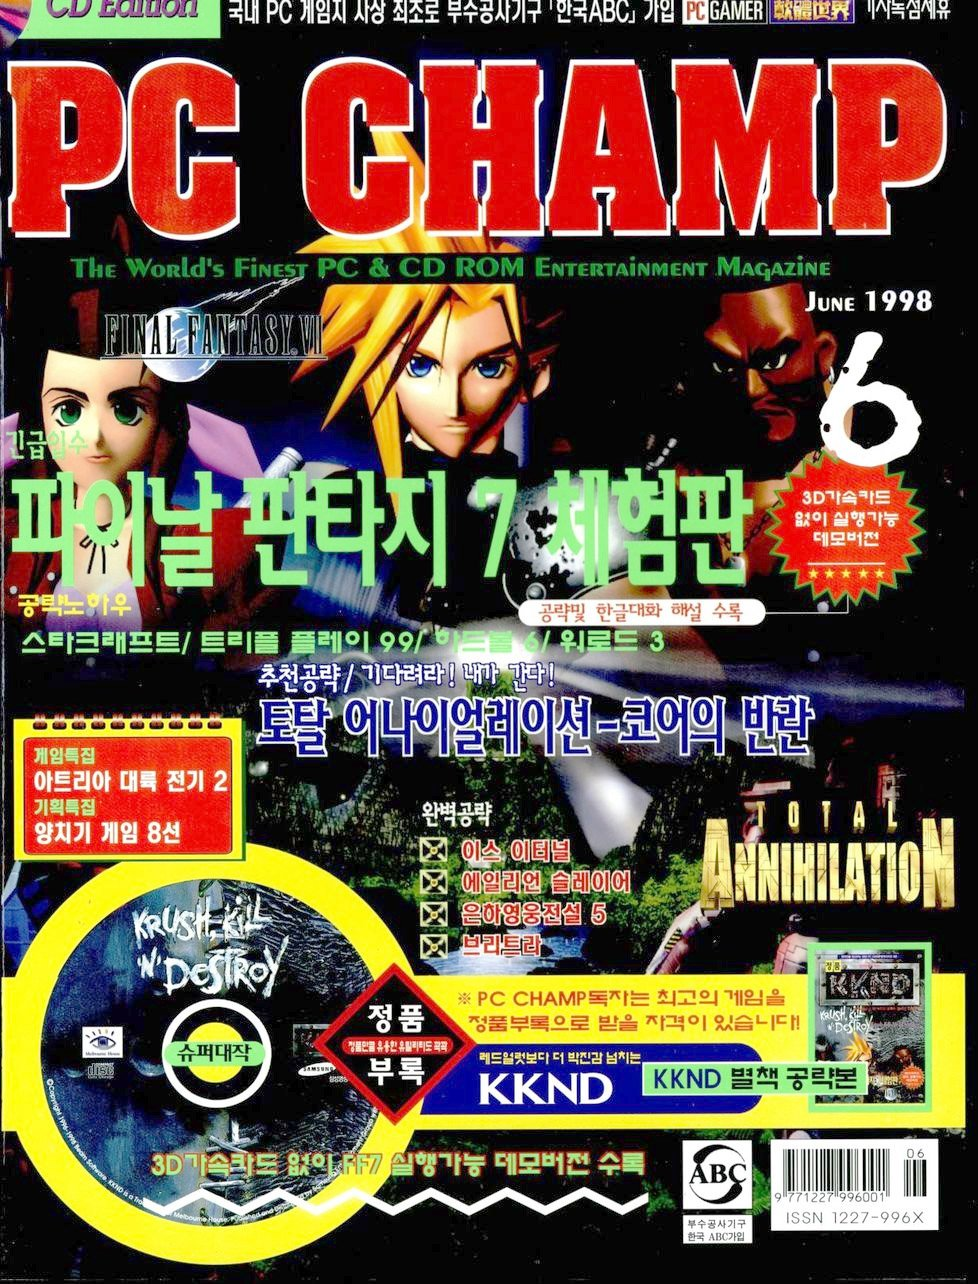 PC Champ Issue 35 (June 1998)